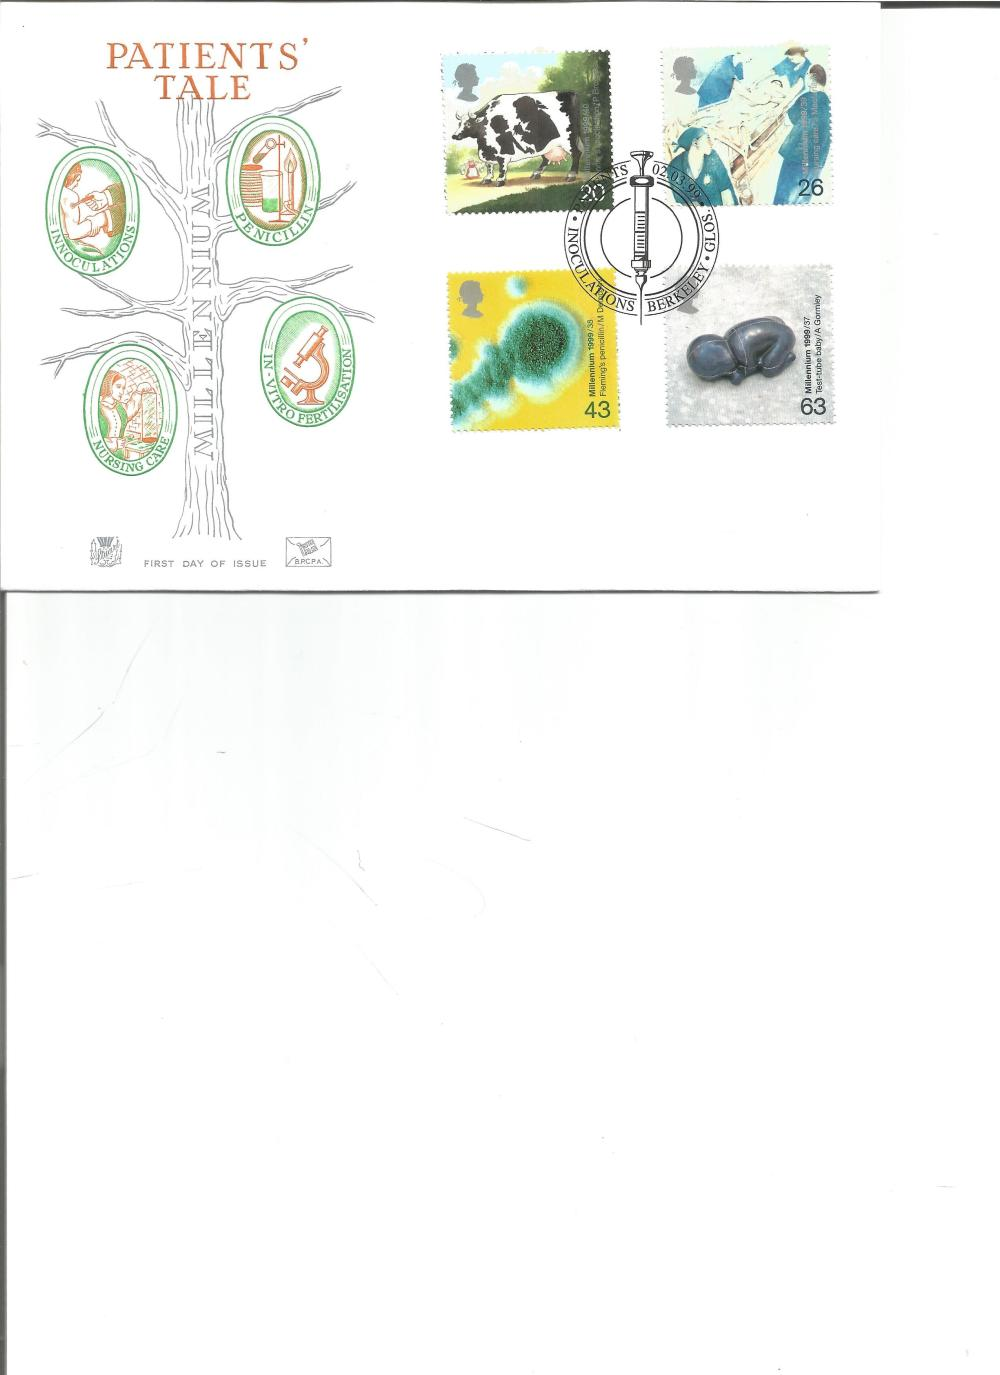 FDC Patients Tale c/w set of four stamps PM Patients Inoculations Berkeley, Glos 02. 03. 99. We